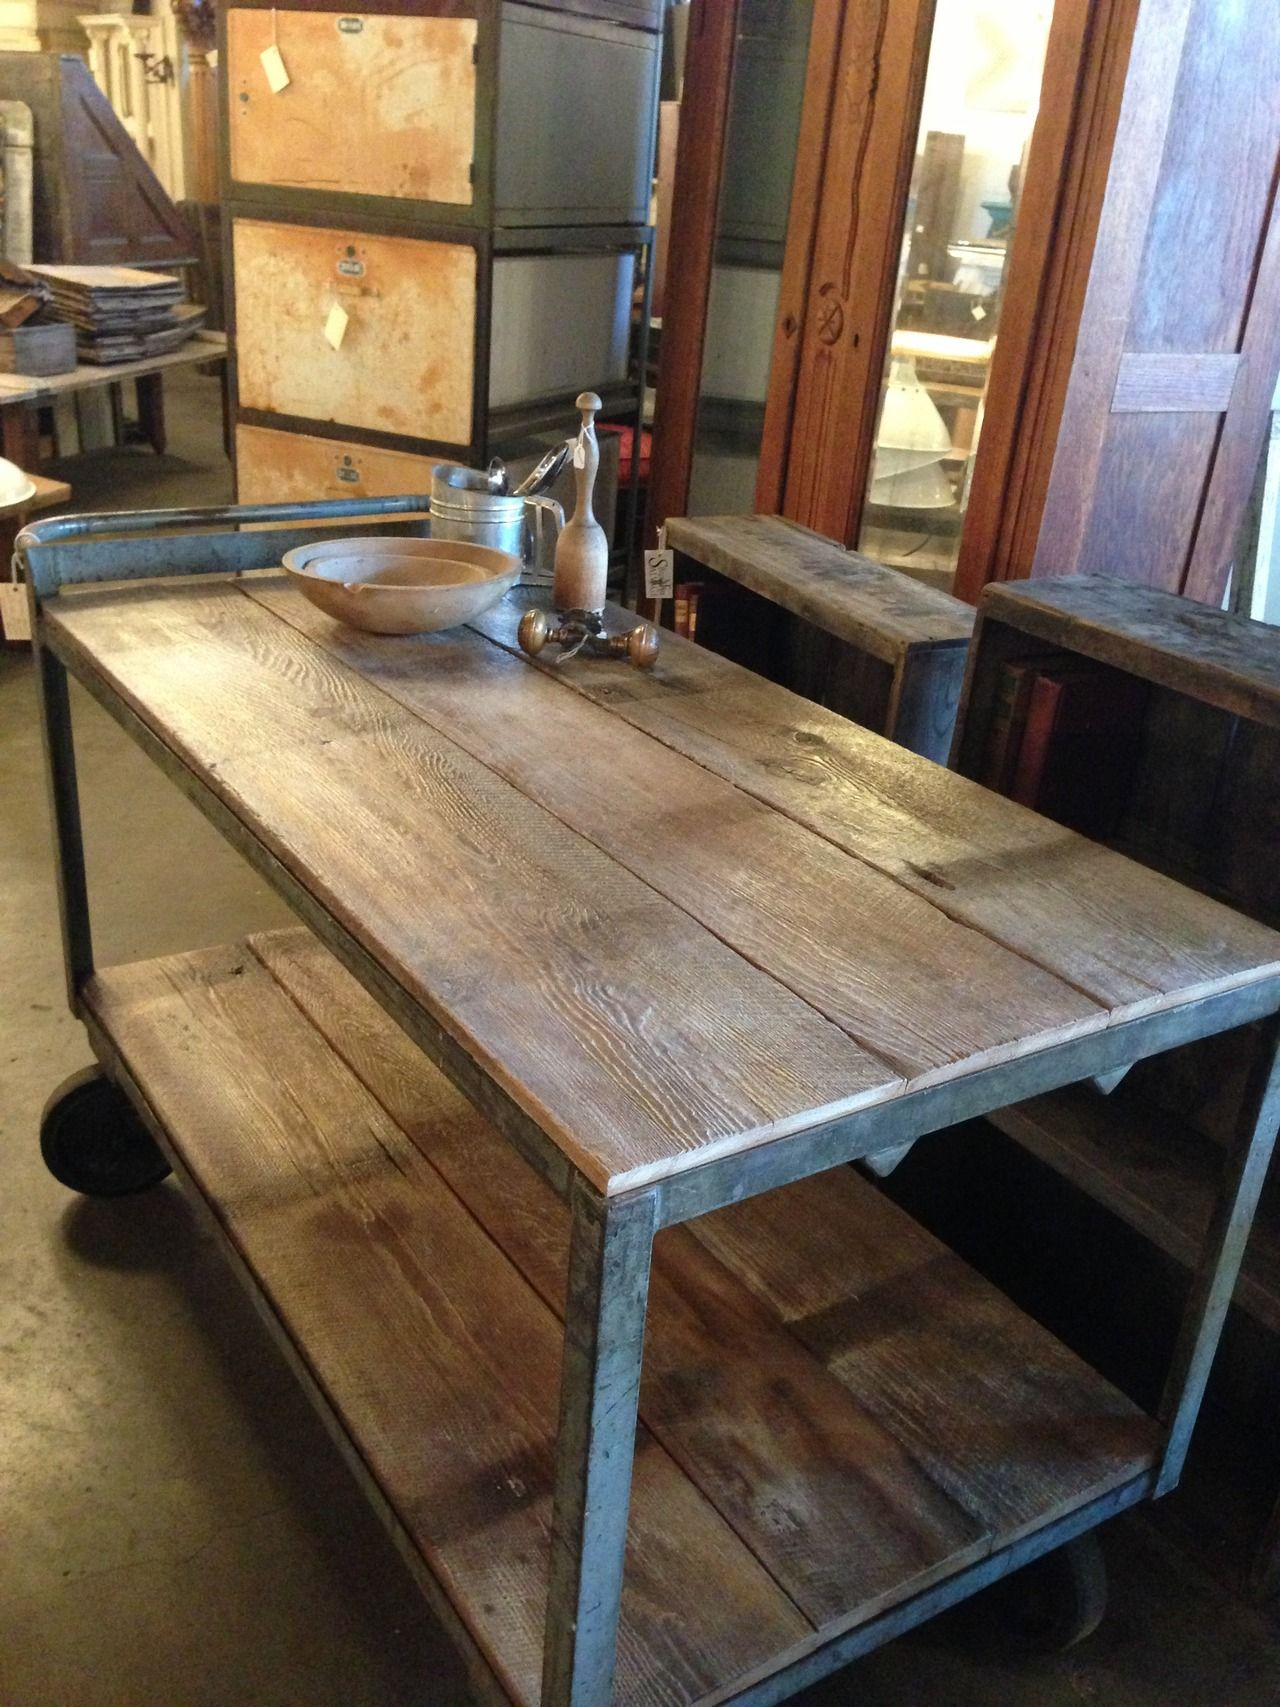 Reclaimed barn wood industrial cart kitchen island From Silver Fox Salvage, Los  Angeles. - Reclaimed Barn Wood Industrial Cart Kitchen Island From Silver Fox